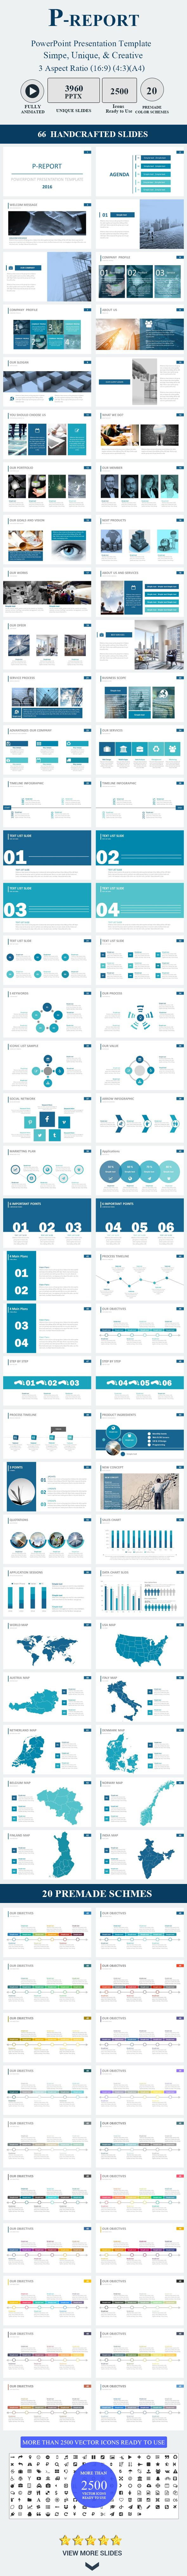 P-Report PowerPoint Presentation Template - Business PowerPoint Templates